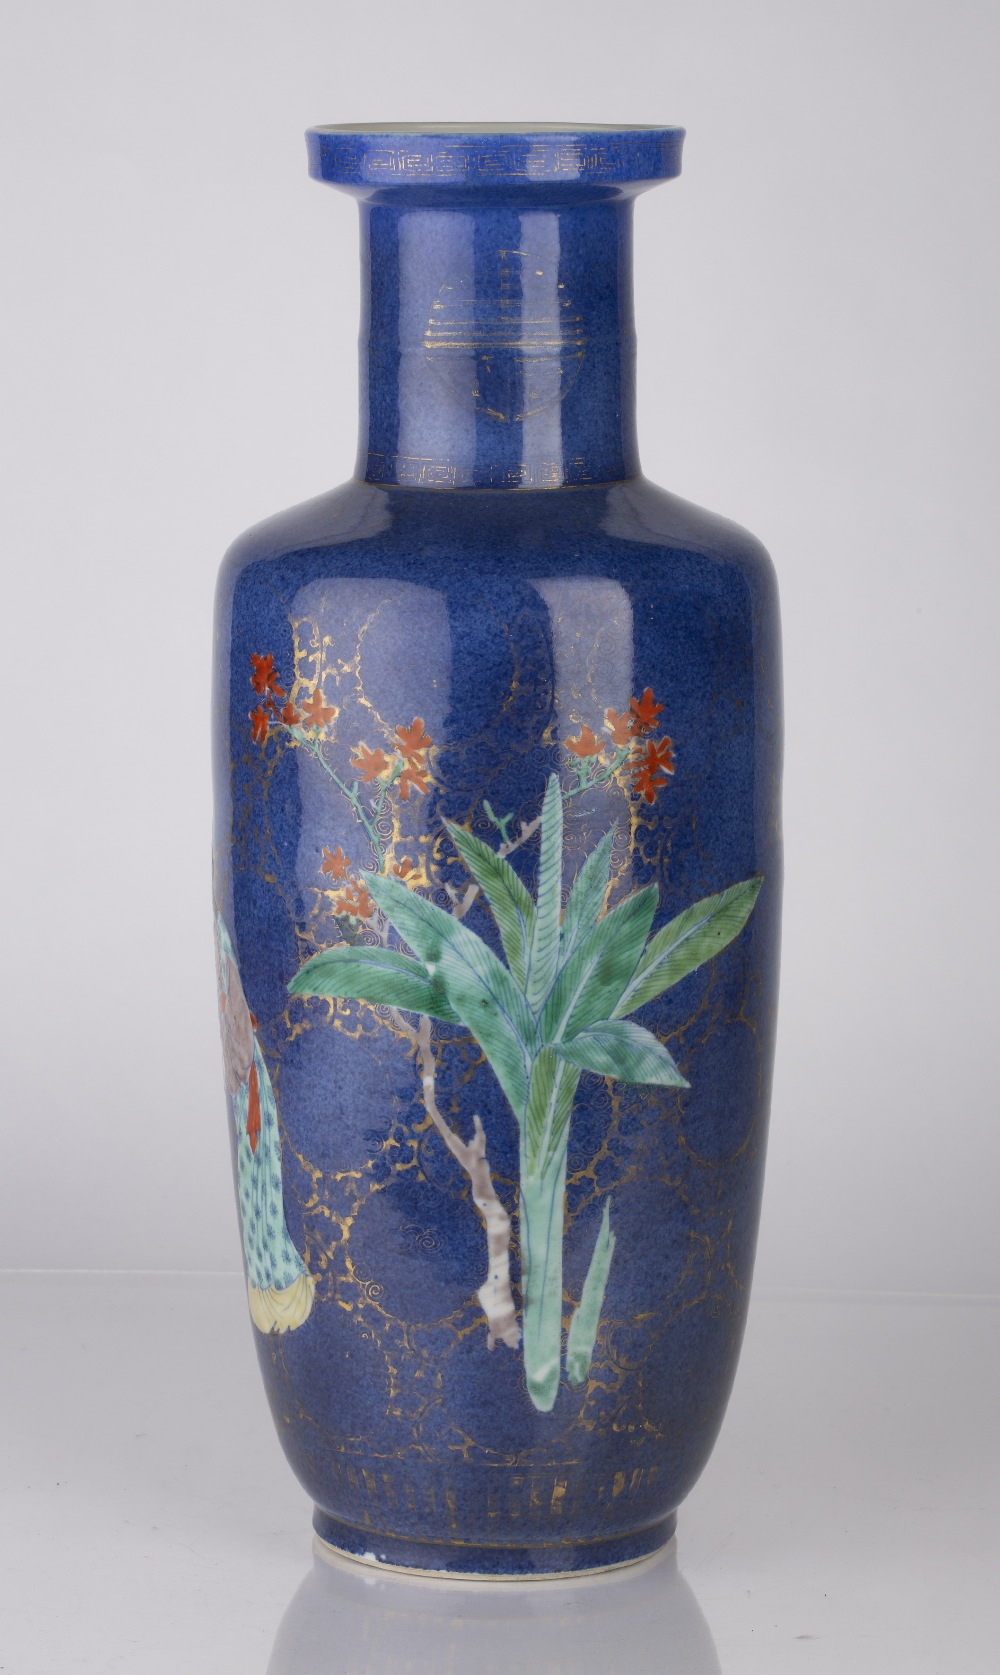 Powder-blue ground rouleau vase Chinese, Kangxi period (1662-1722) decorated in colourful enamels - Image 4 of 6